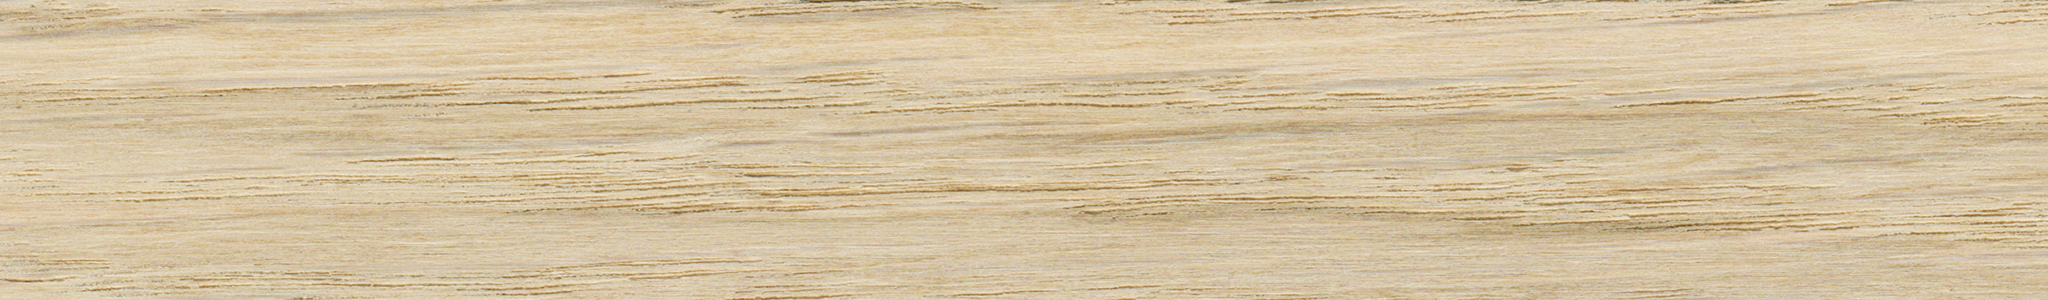 HD 74130 Veneer Edge European Oak Thick